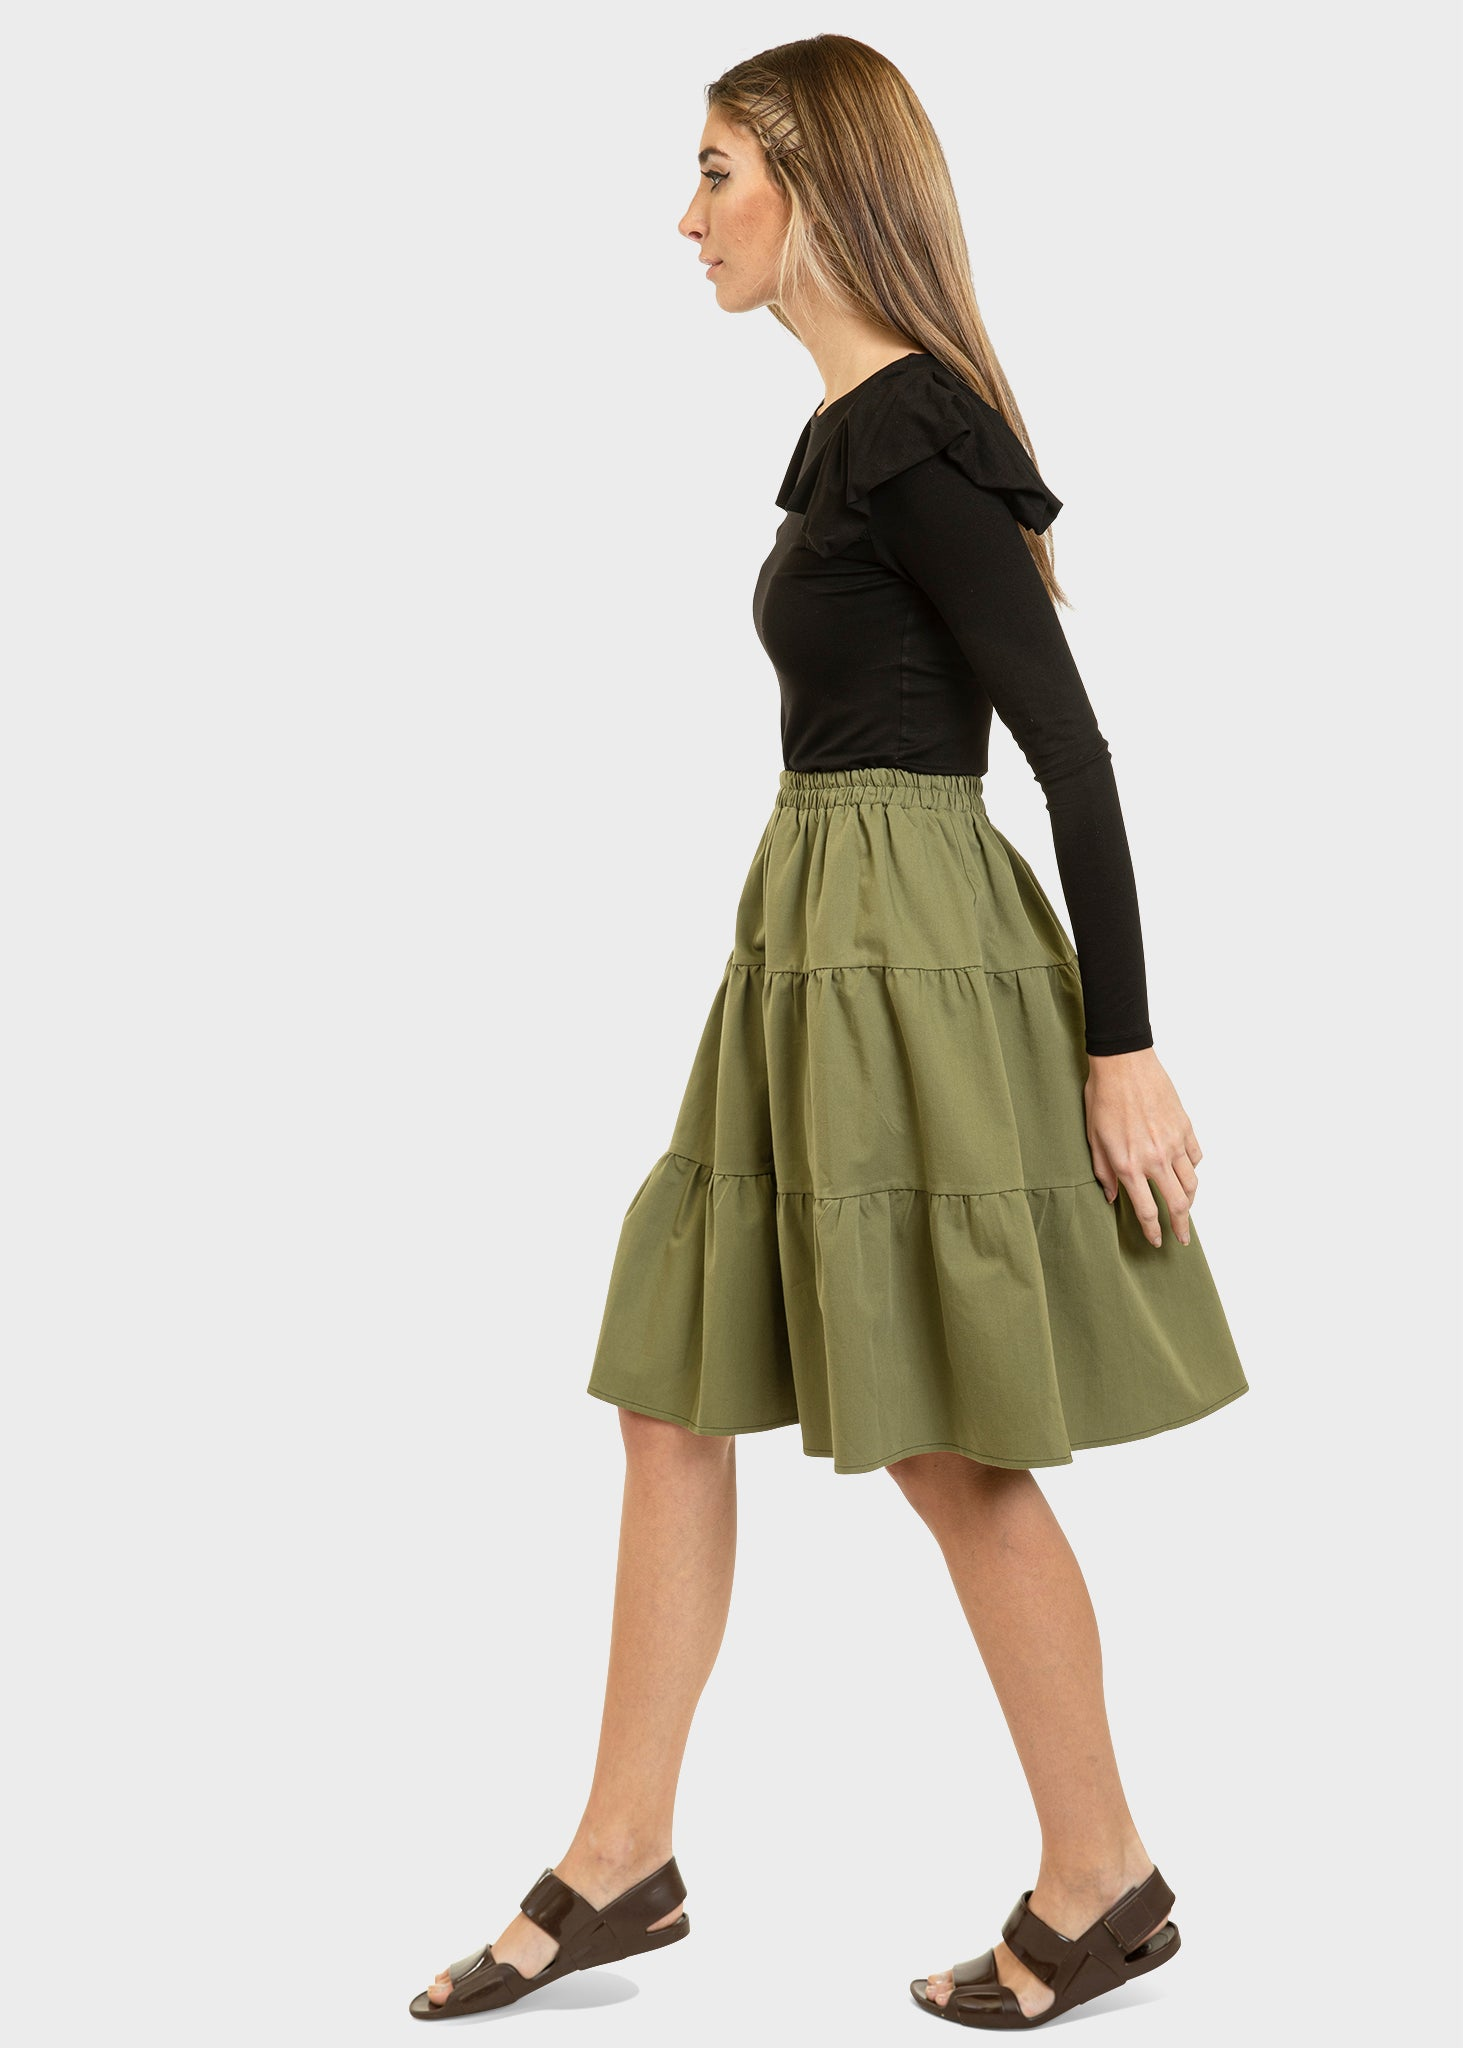 The Flirt Skirt Khaki